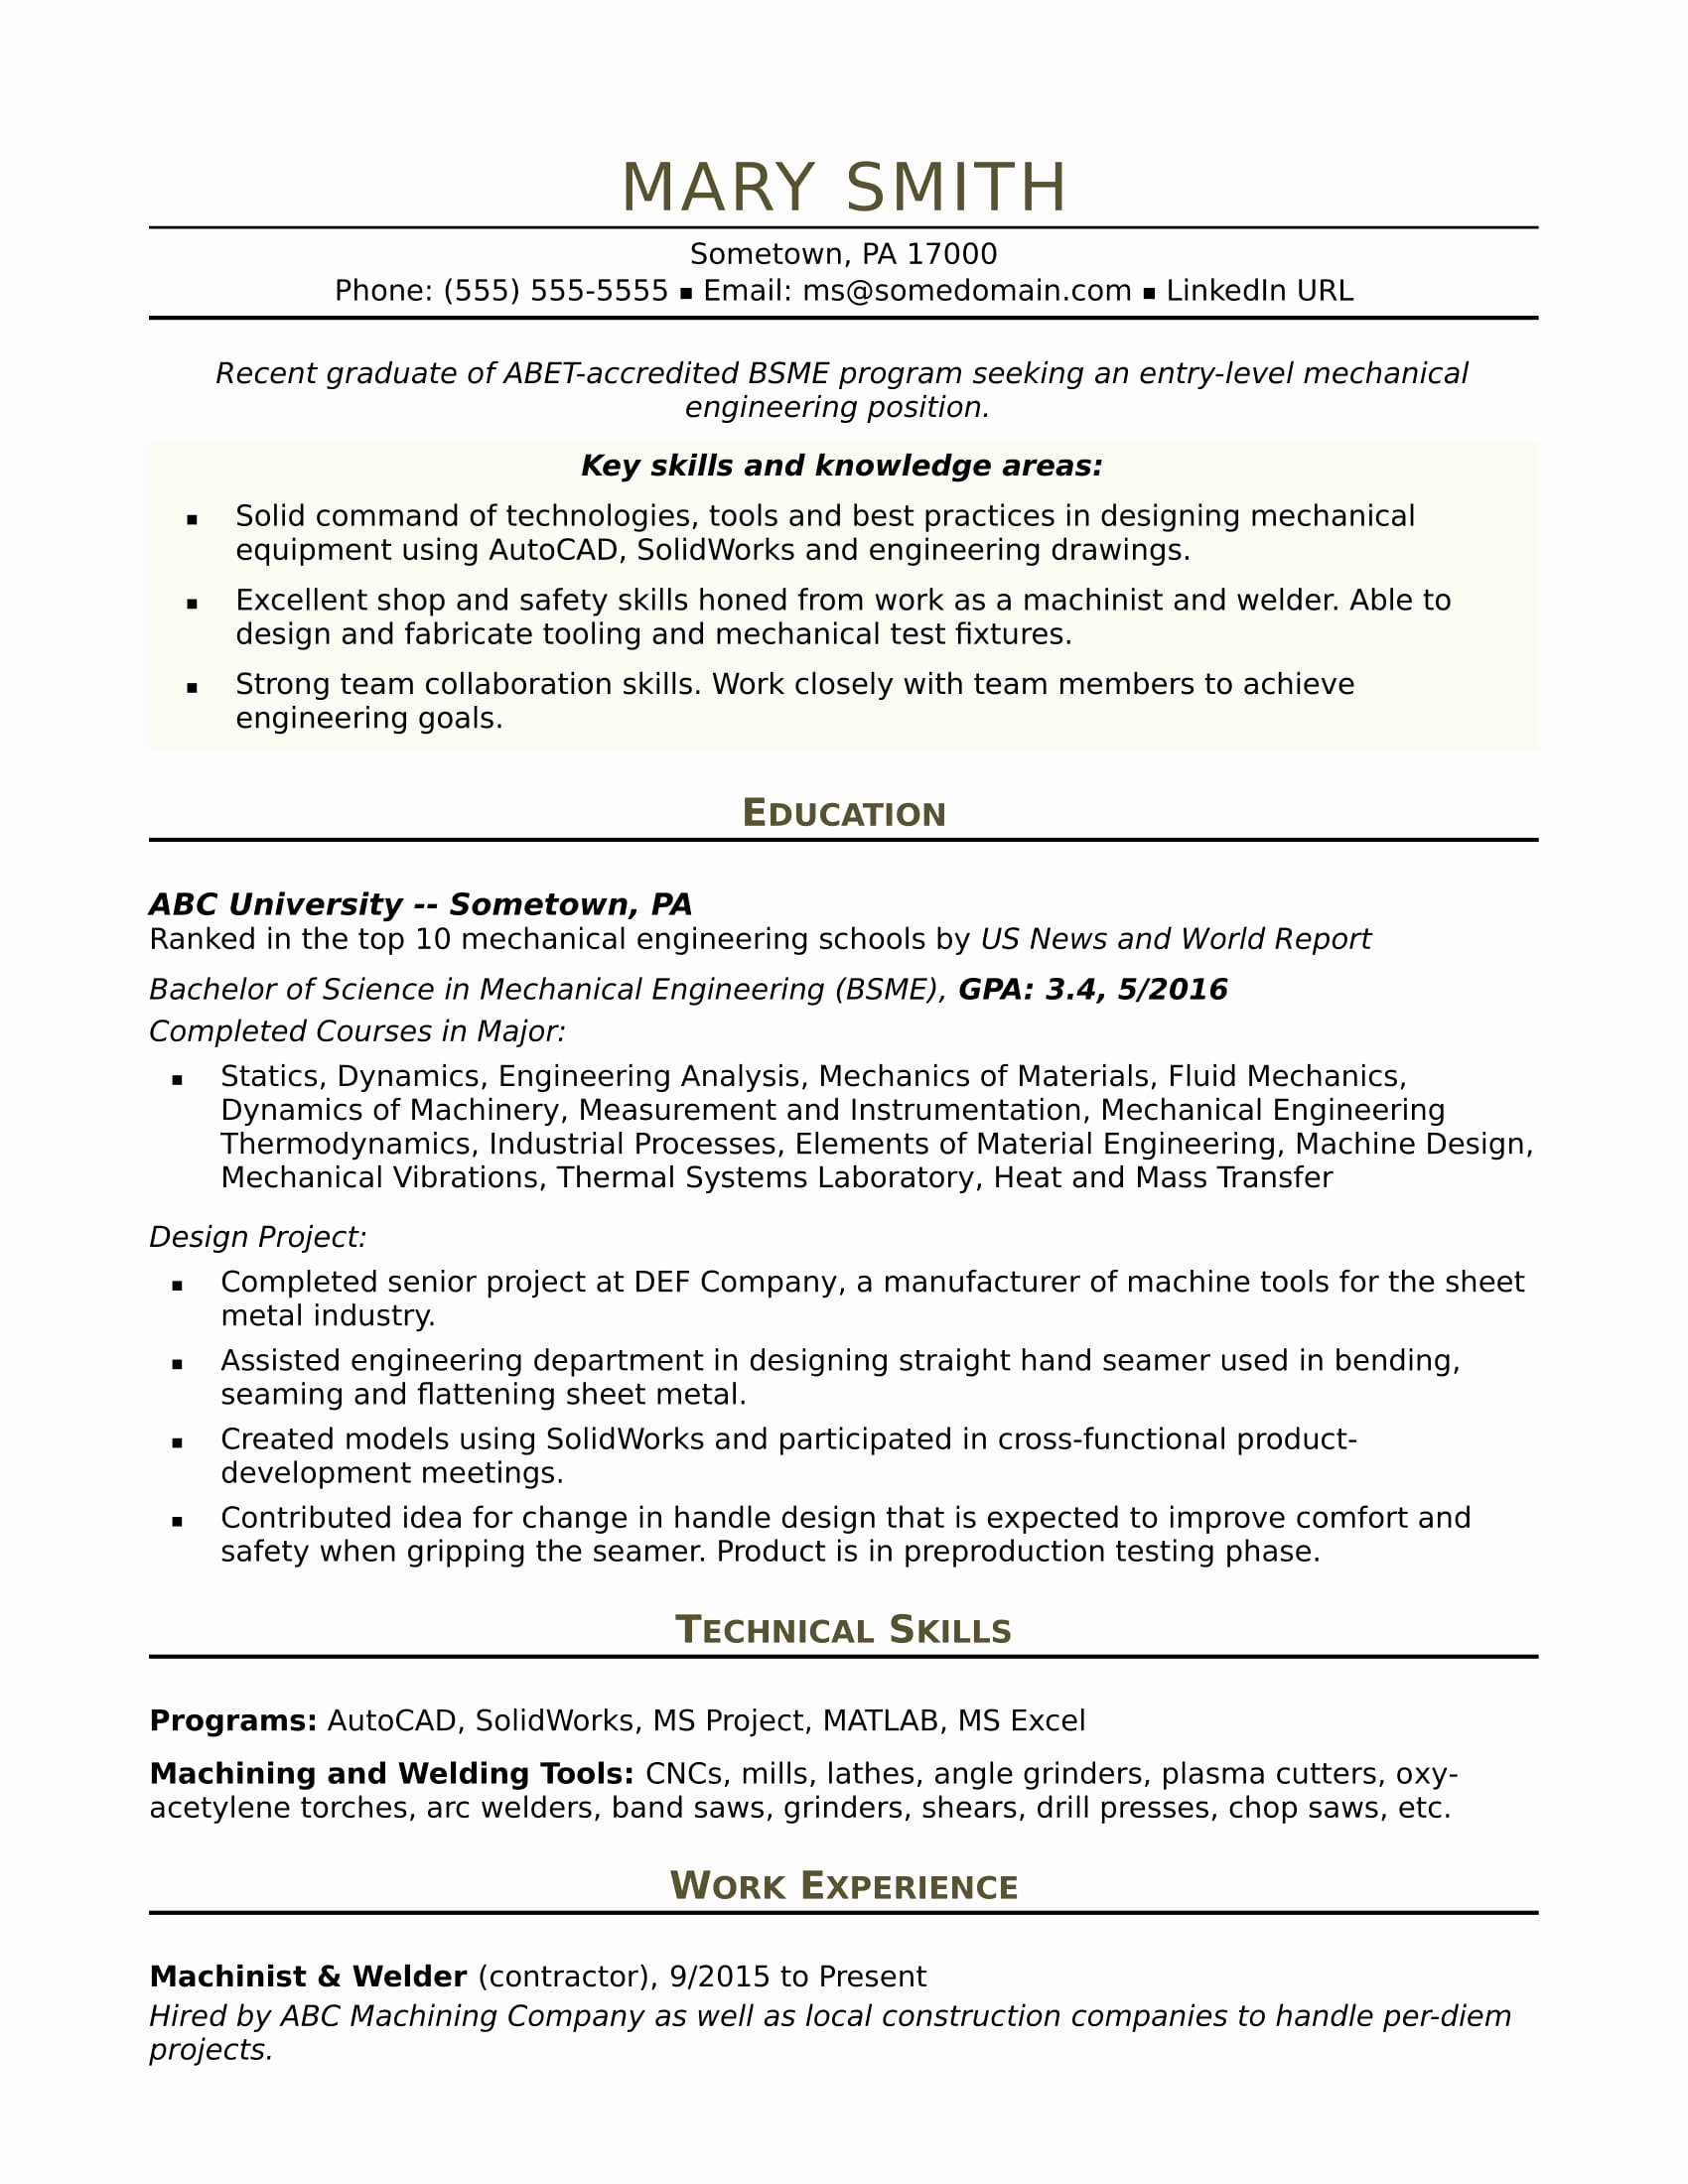 Mechanical Engineering Curriculum Vitae Awesome Sample Resume for An Entry Level Mechanical Engineer